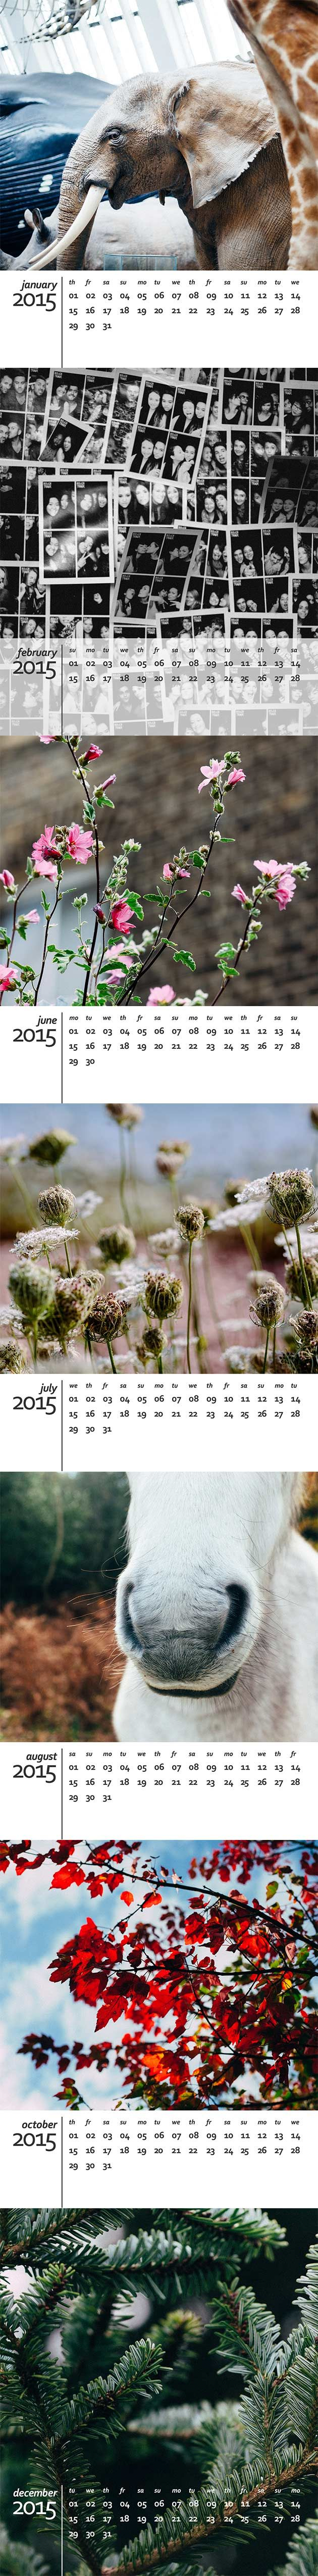 A free calendar template for 2015  http://www.angiemuldowney.co.uk/2014/10/free-2015-calendar-template-for-photoshop/ #printable #download #free #calendar